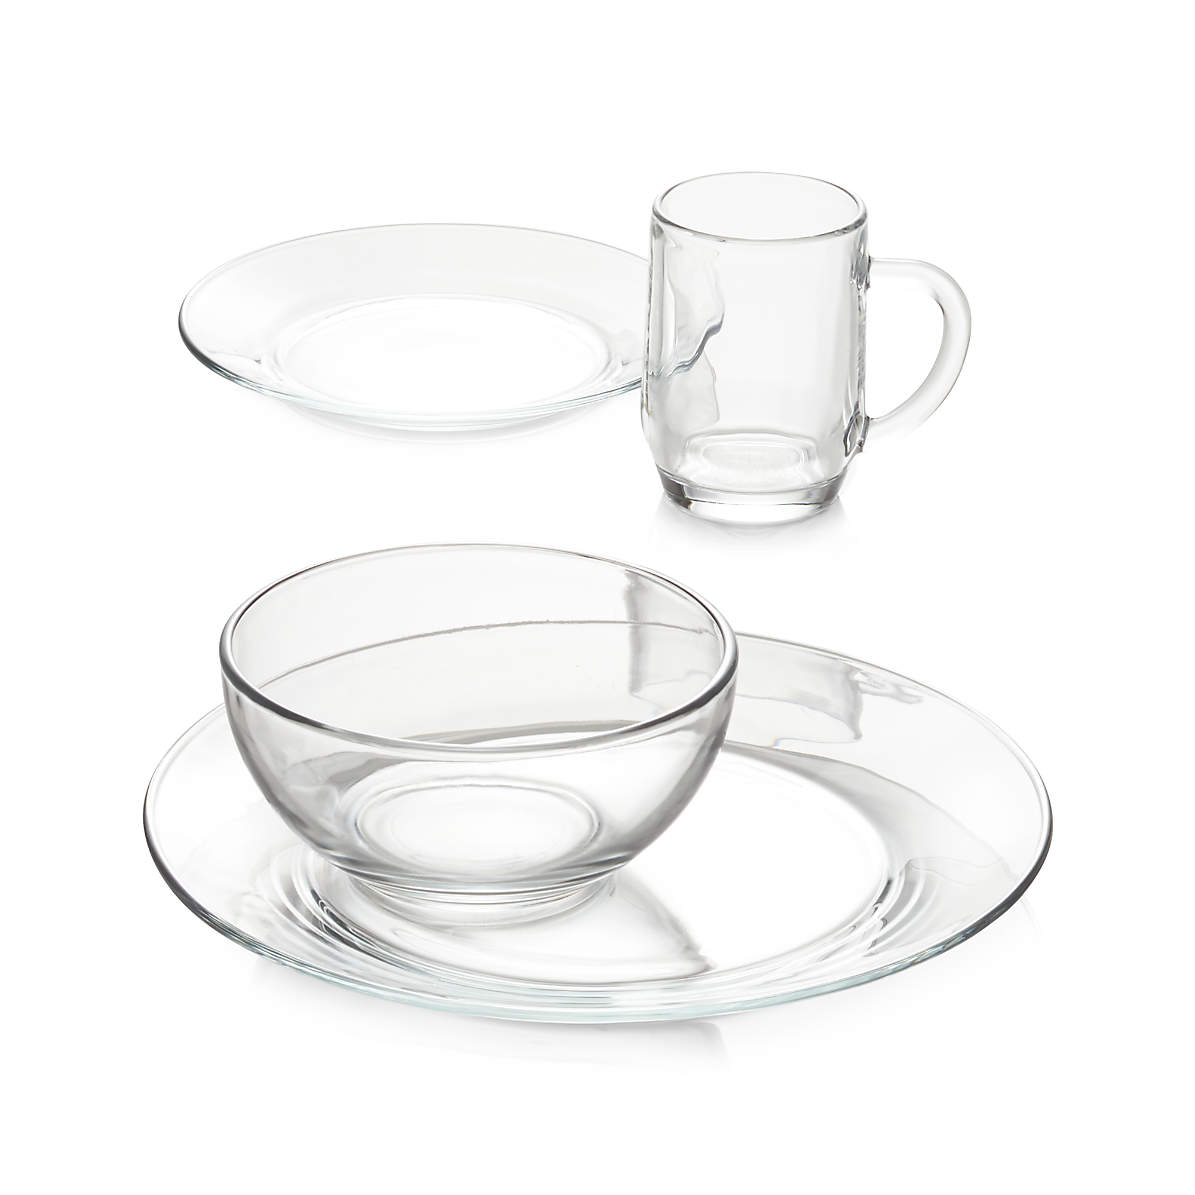 Set Of 8 Moderno Dinner Plates Reviews Crate And Barrel